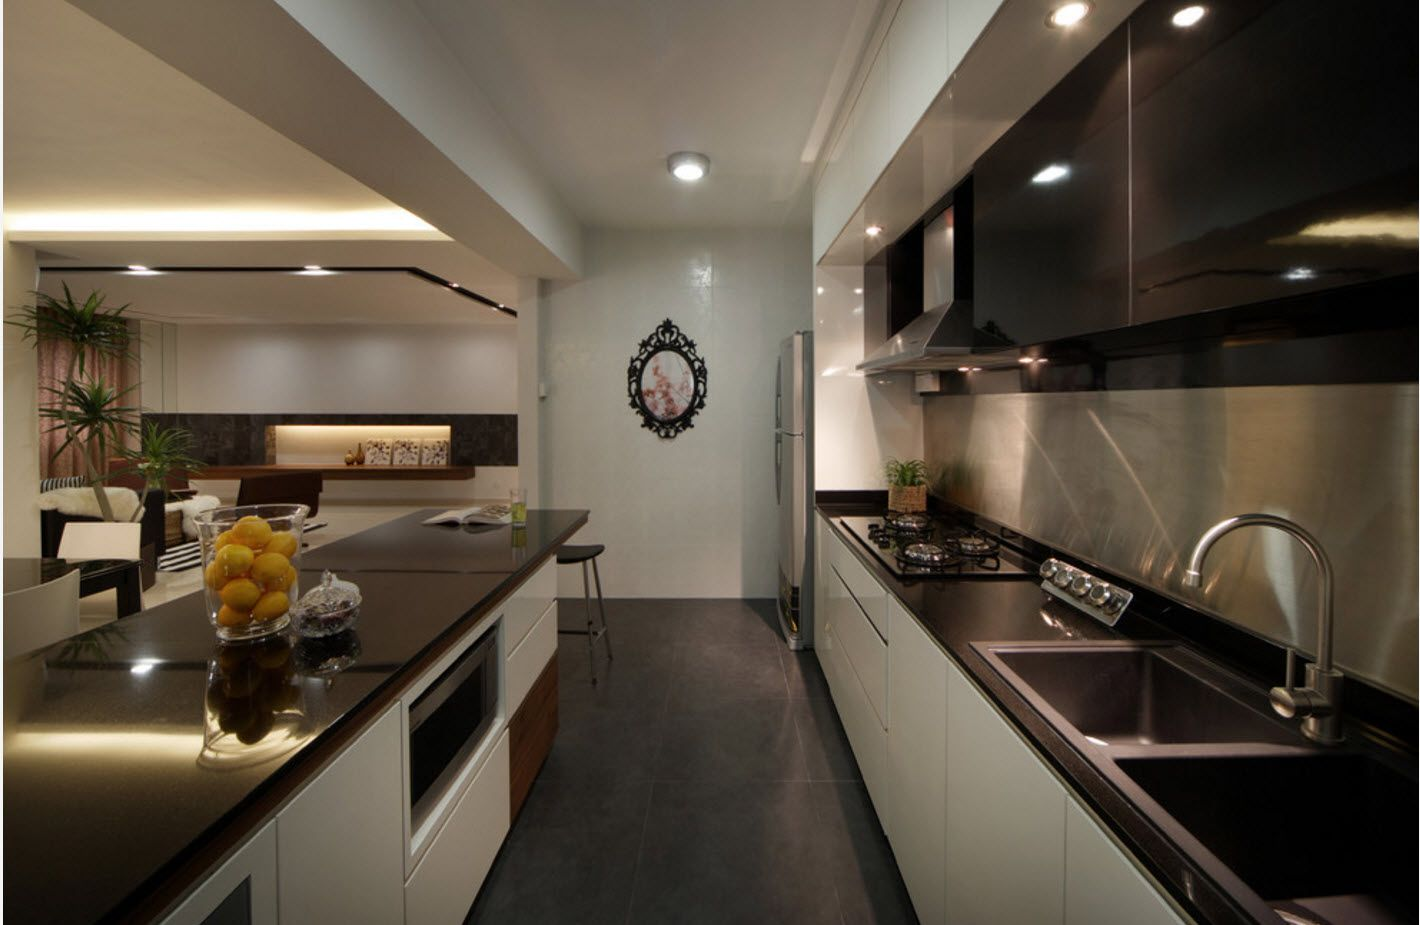 Galley kitchen in hi-tech style with noble dark wooden countertops